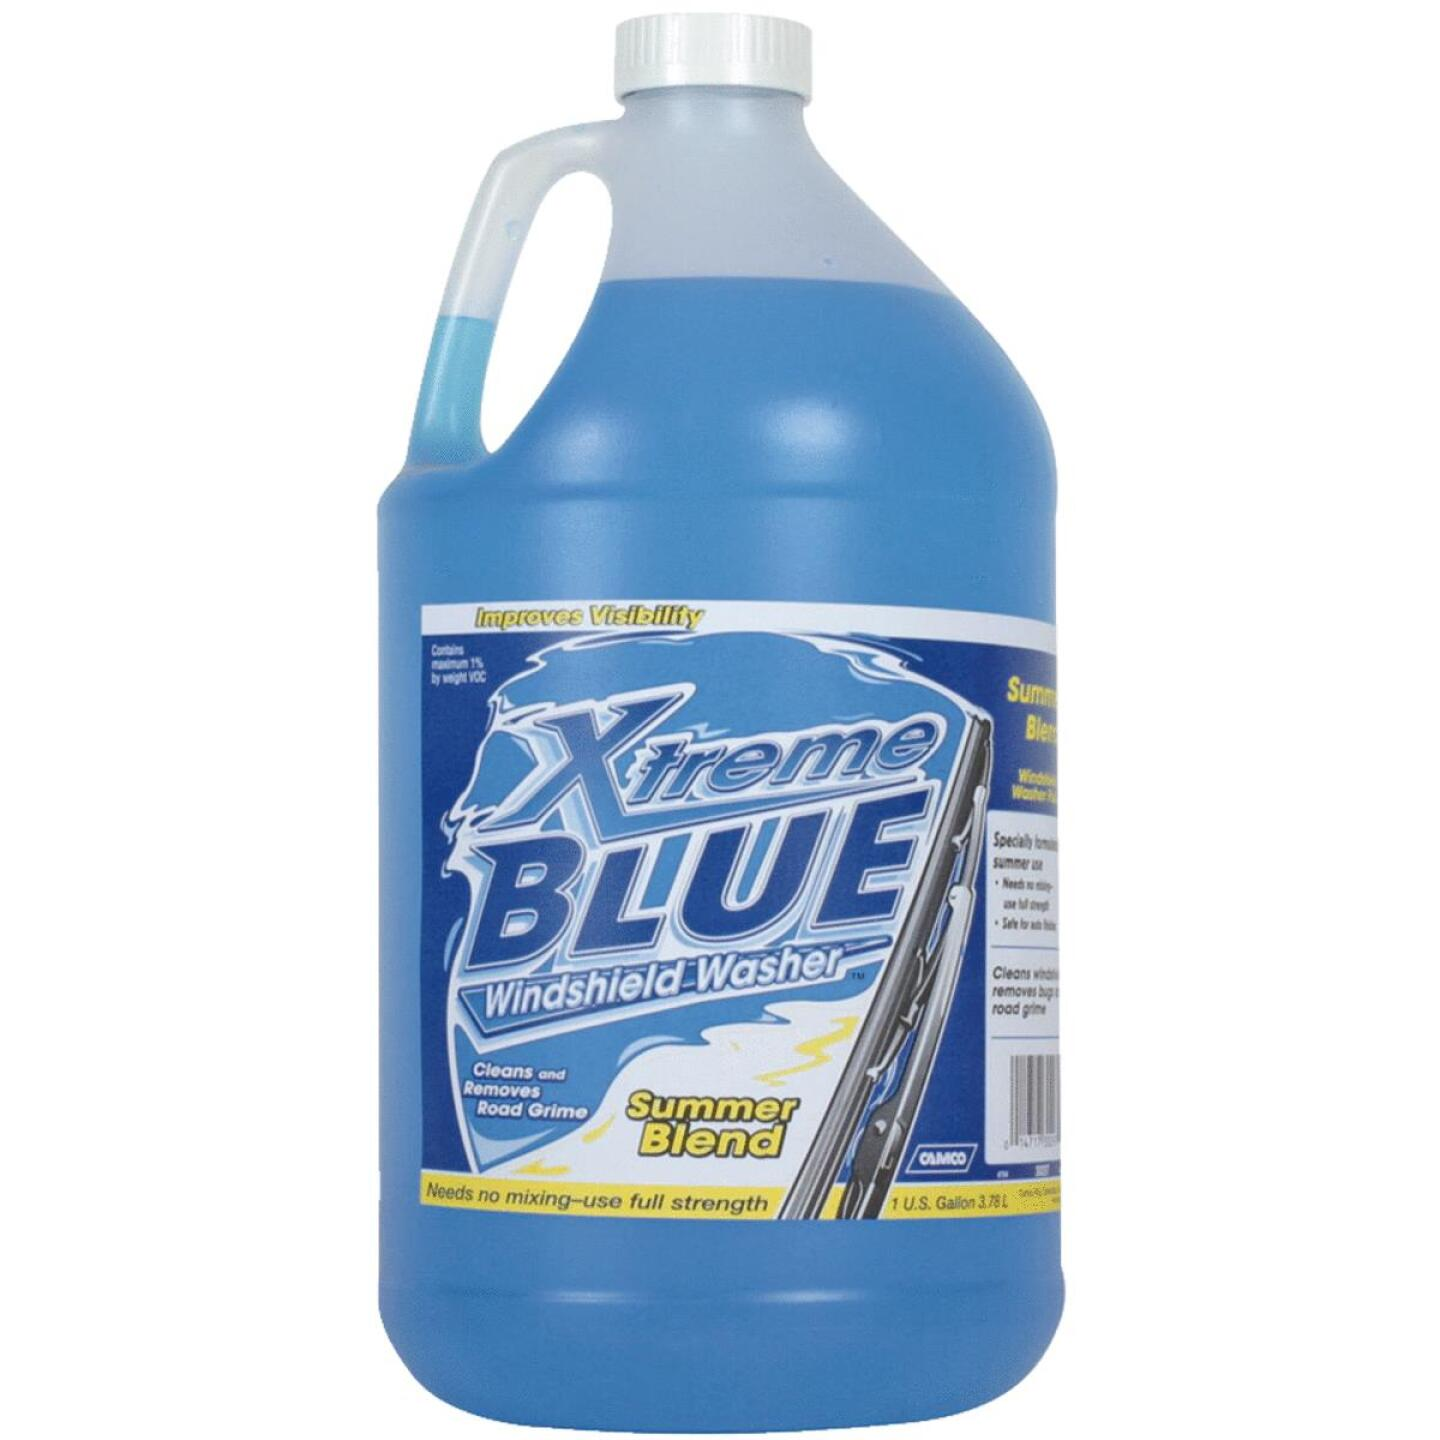 Camco Xtreme Blue 1 Gal. +32 Deg F Temperature Rating Summer Blend Windshield Washer Fluid Image 1